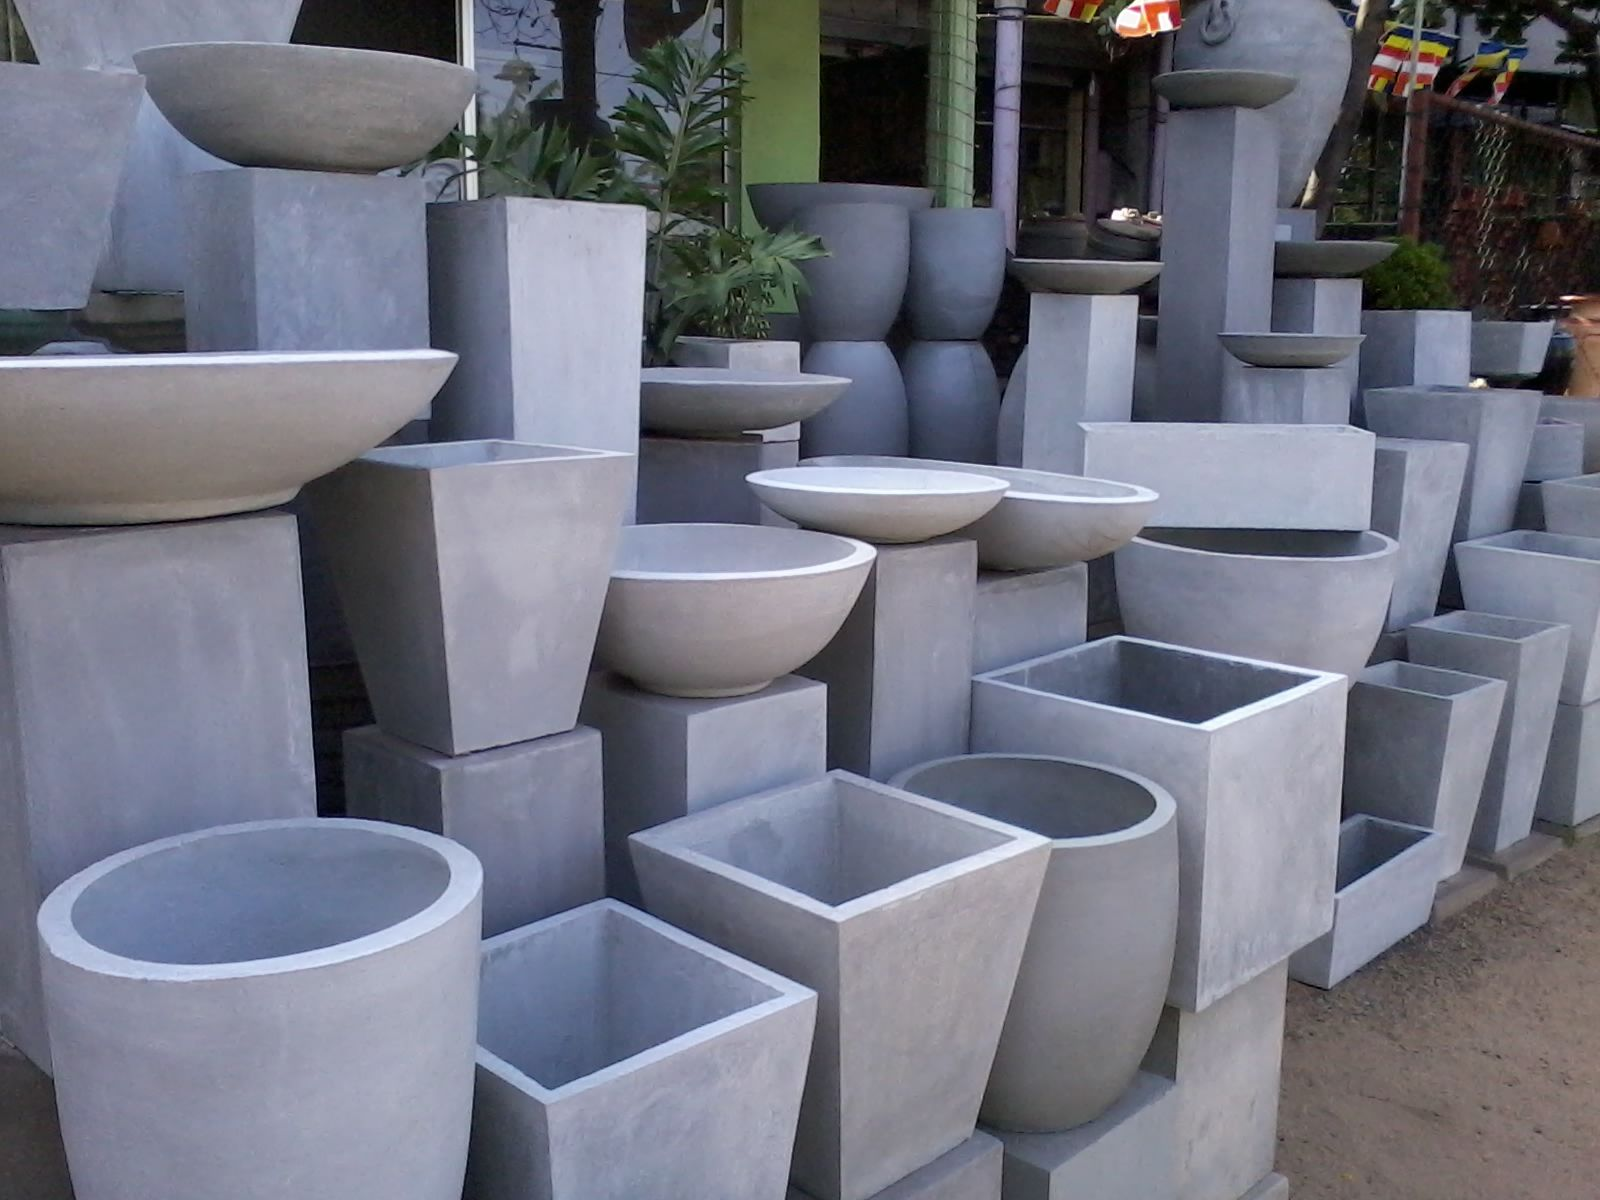 Concrete Molds For Sale Planters Google Search Crafts Concrete